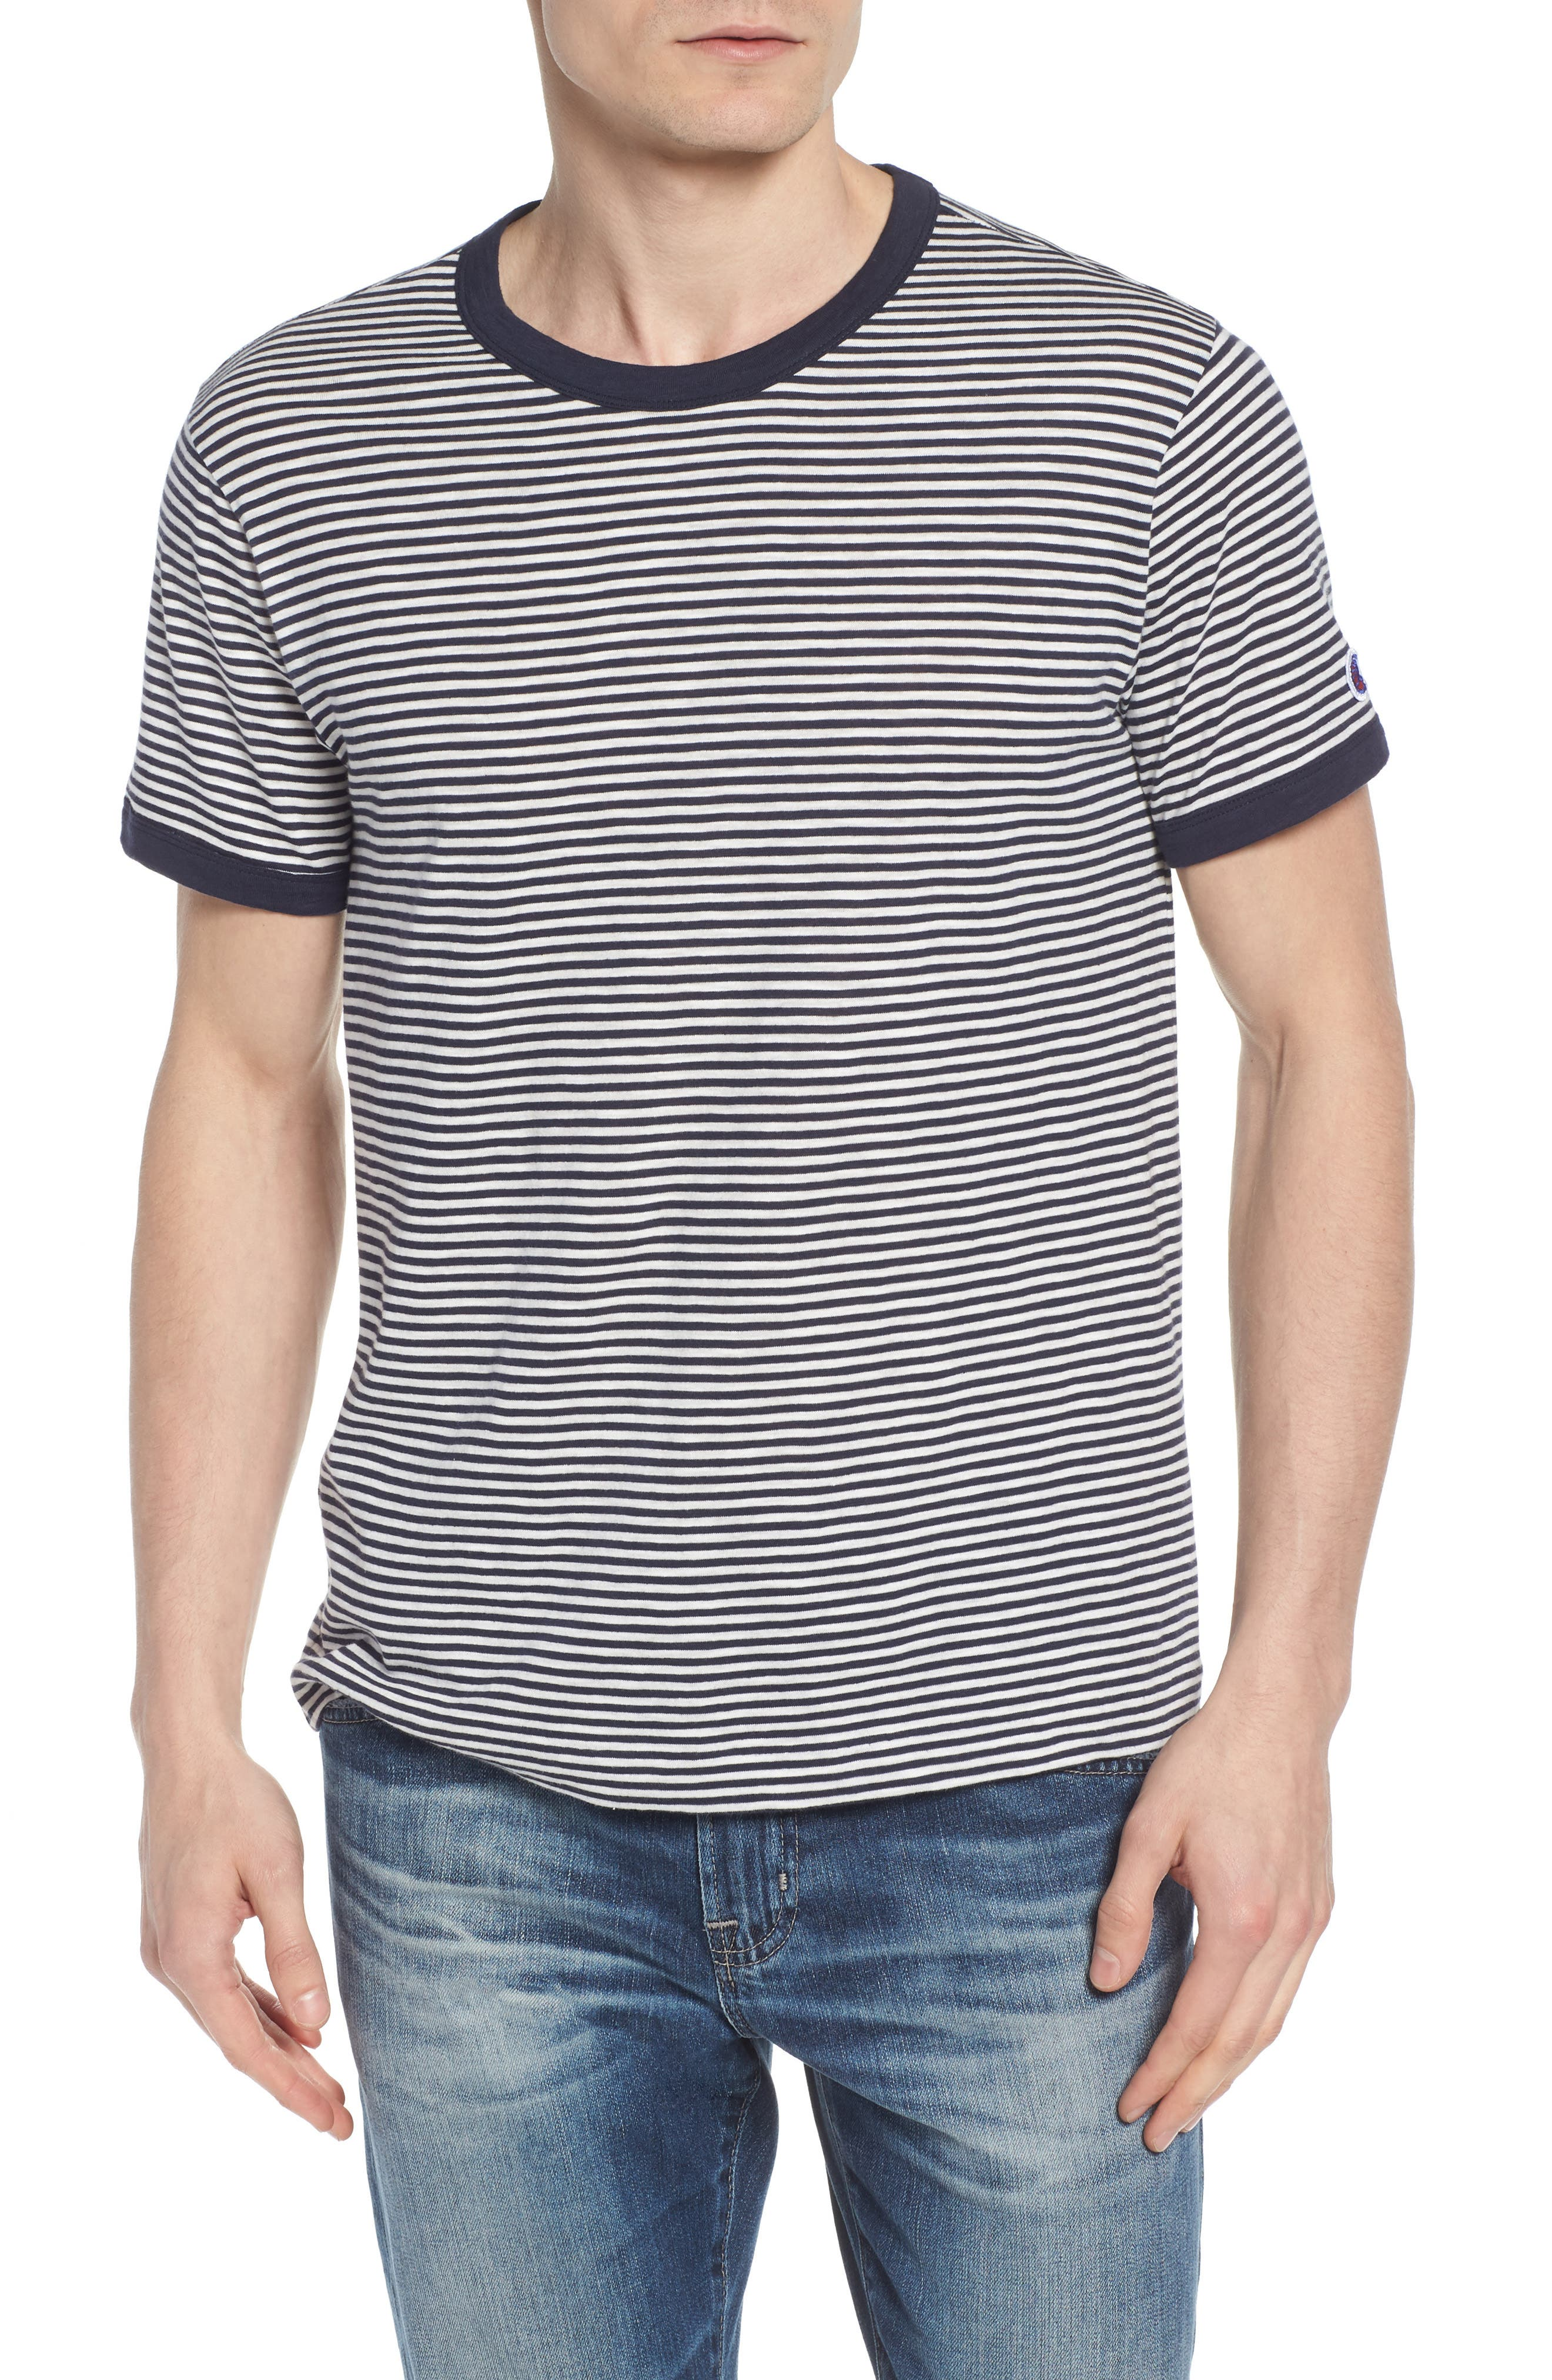 TODD SNYDER + Champion Stripe T-Shirt, Main, color, 410